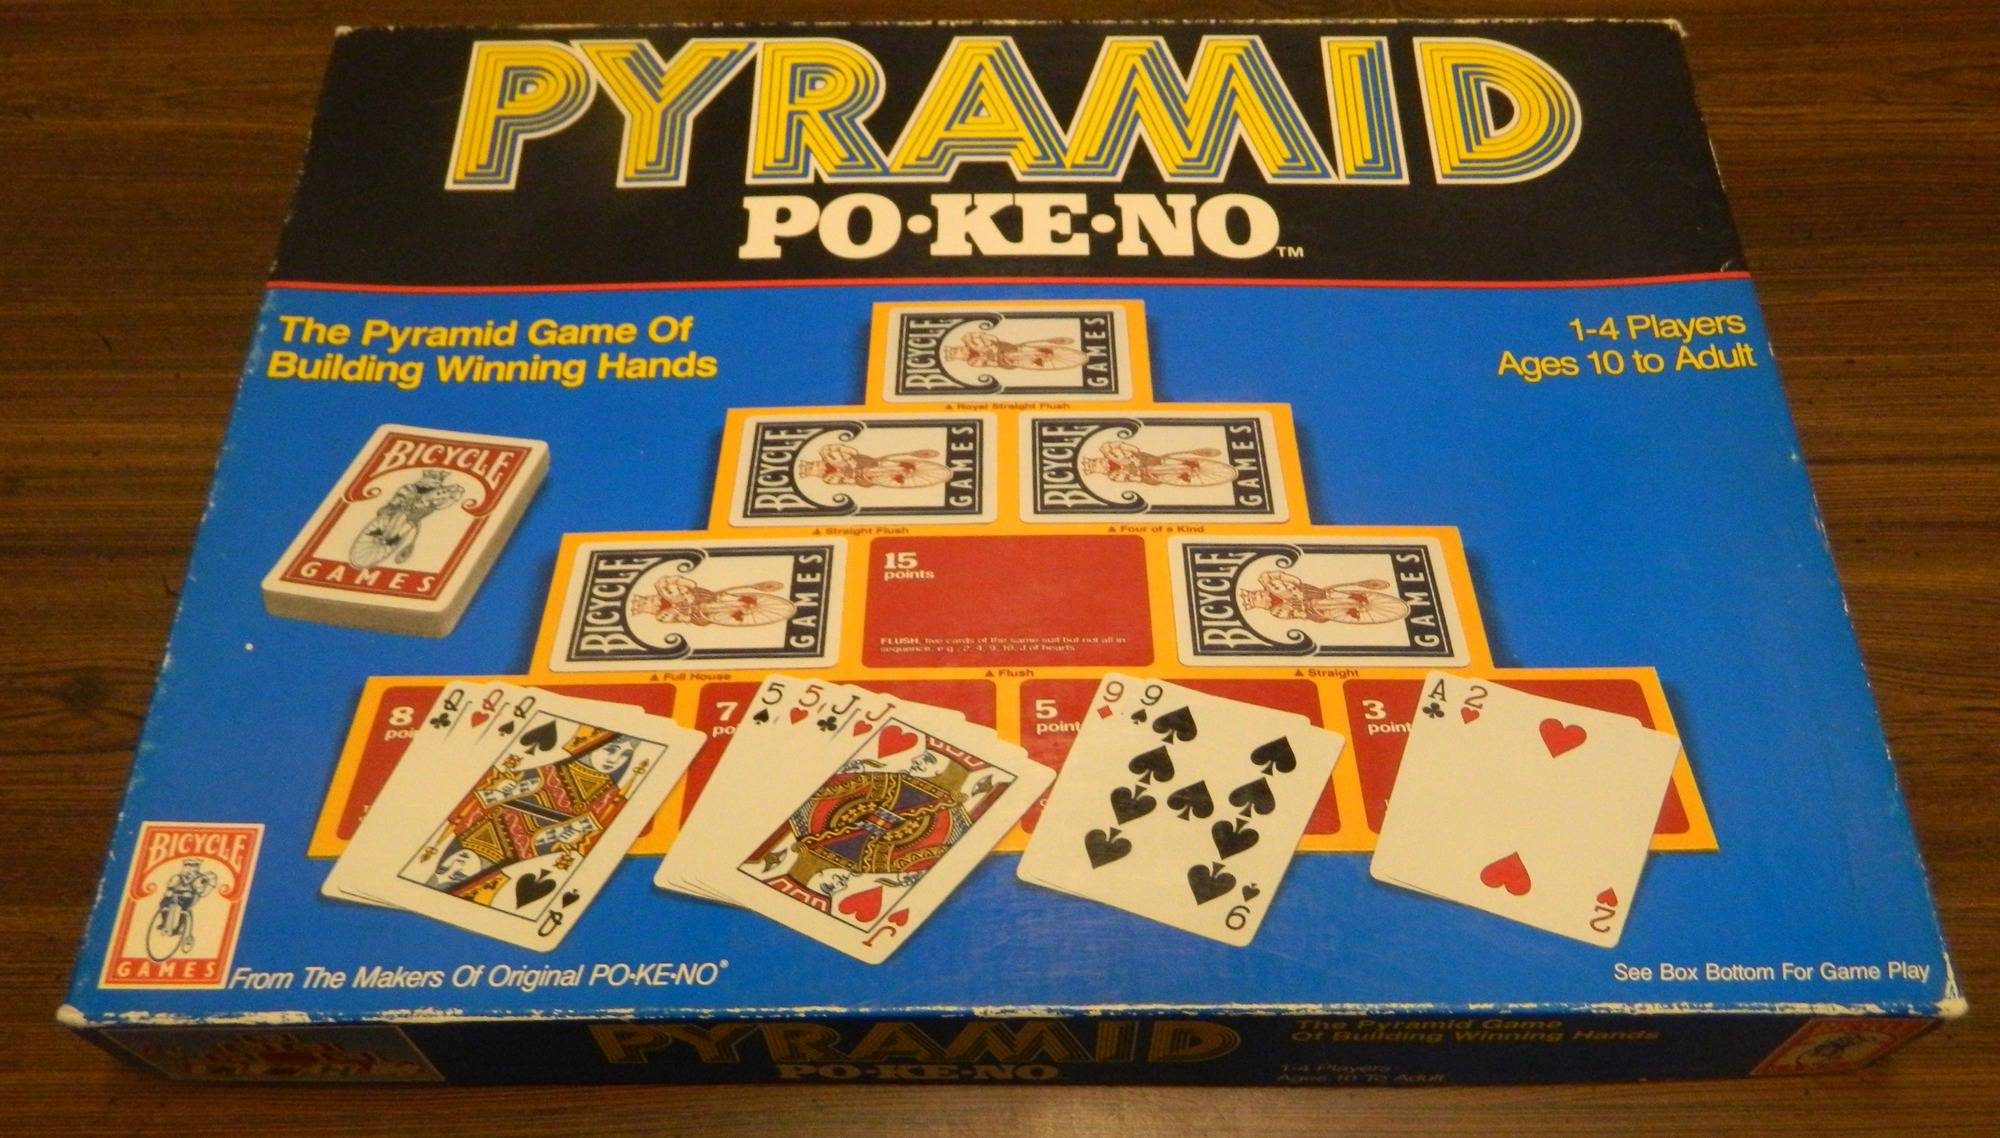 Box for Pyramid Pokeno